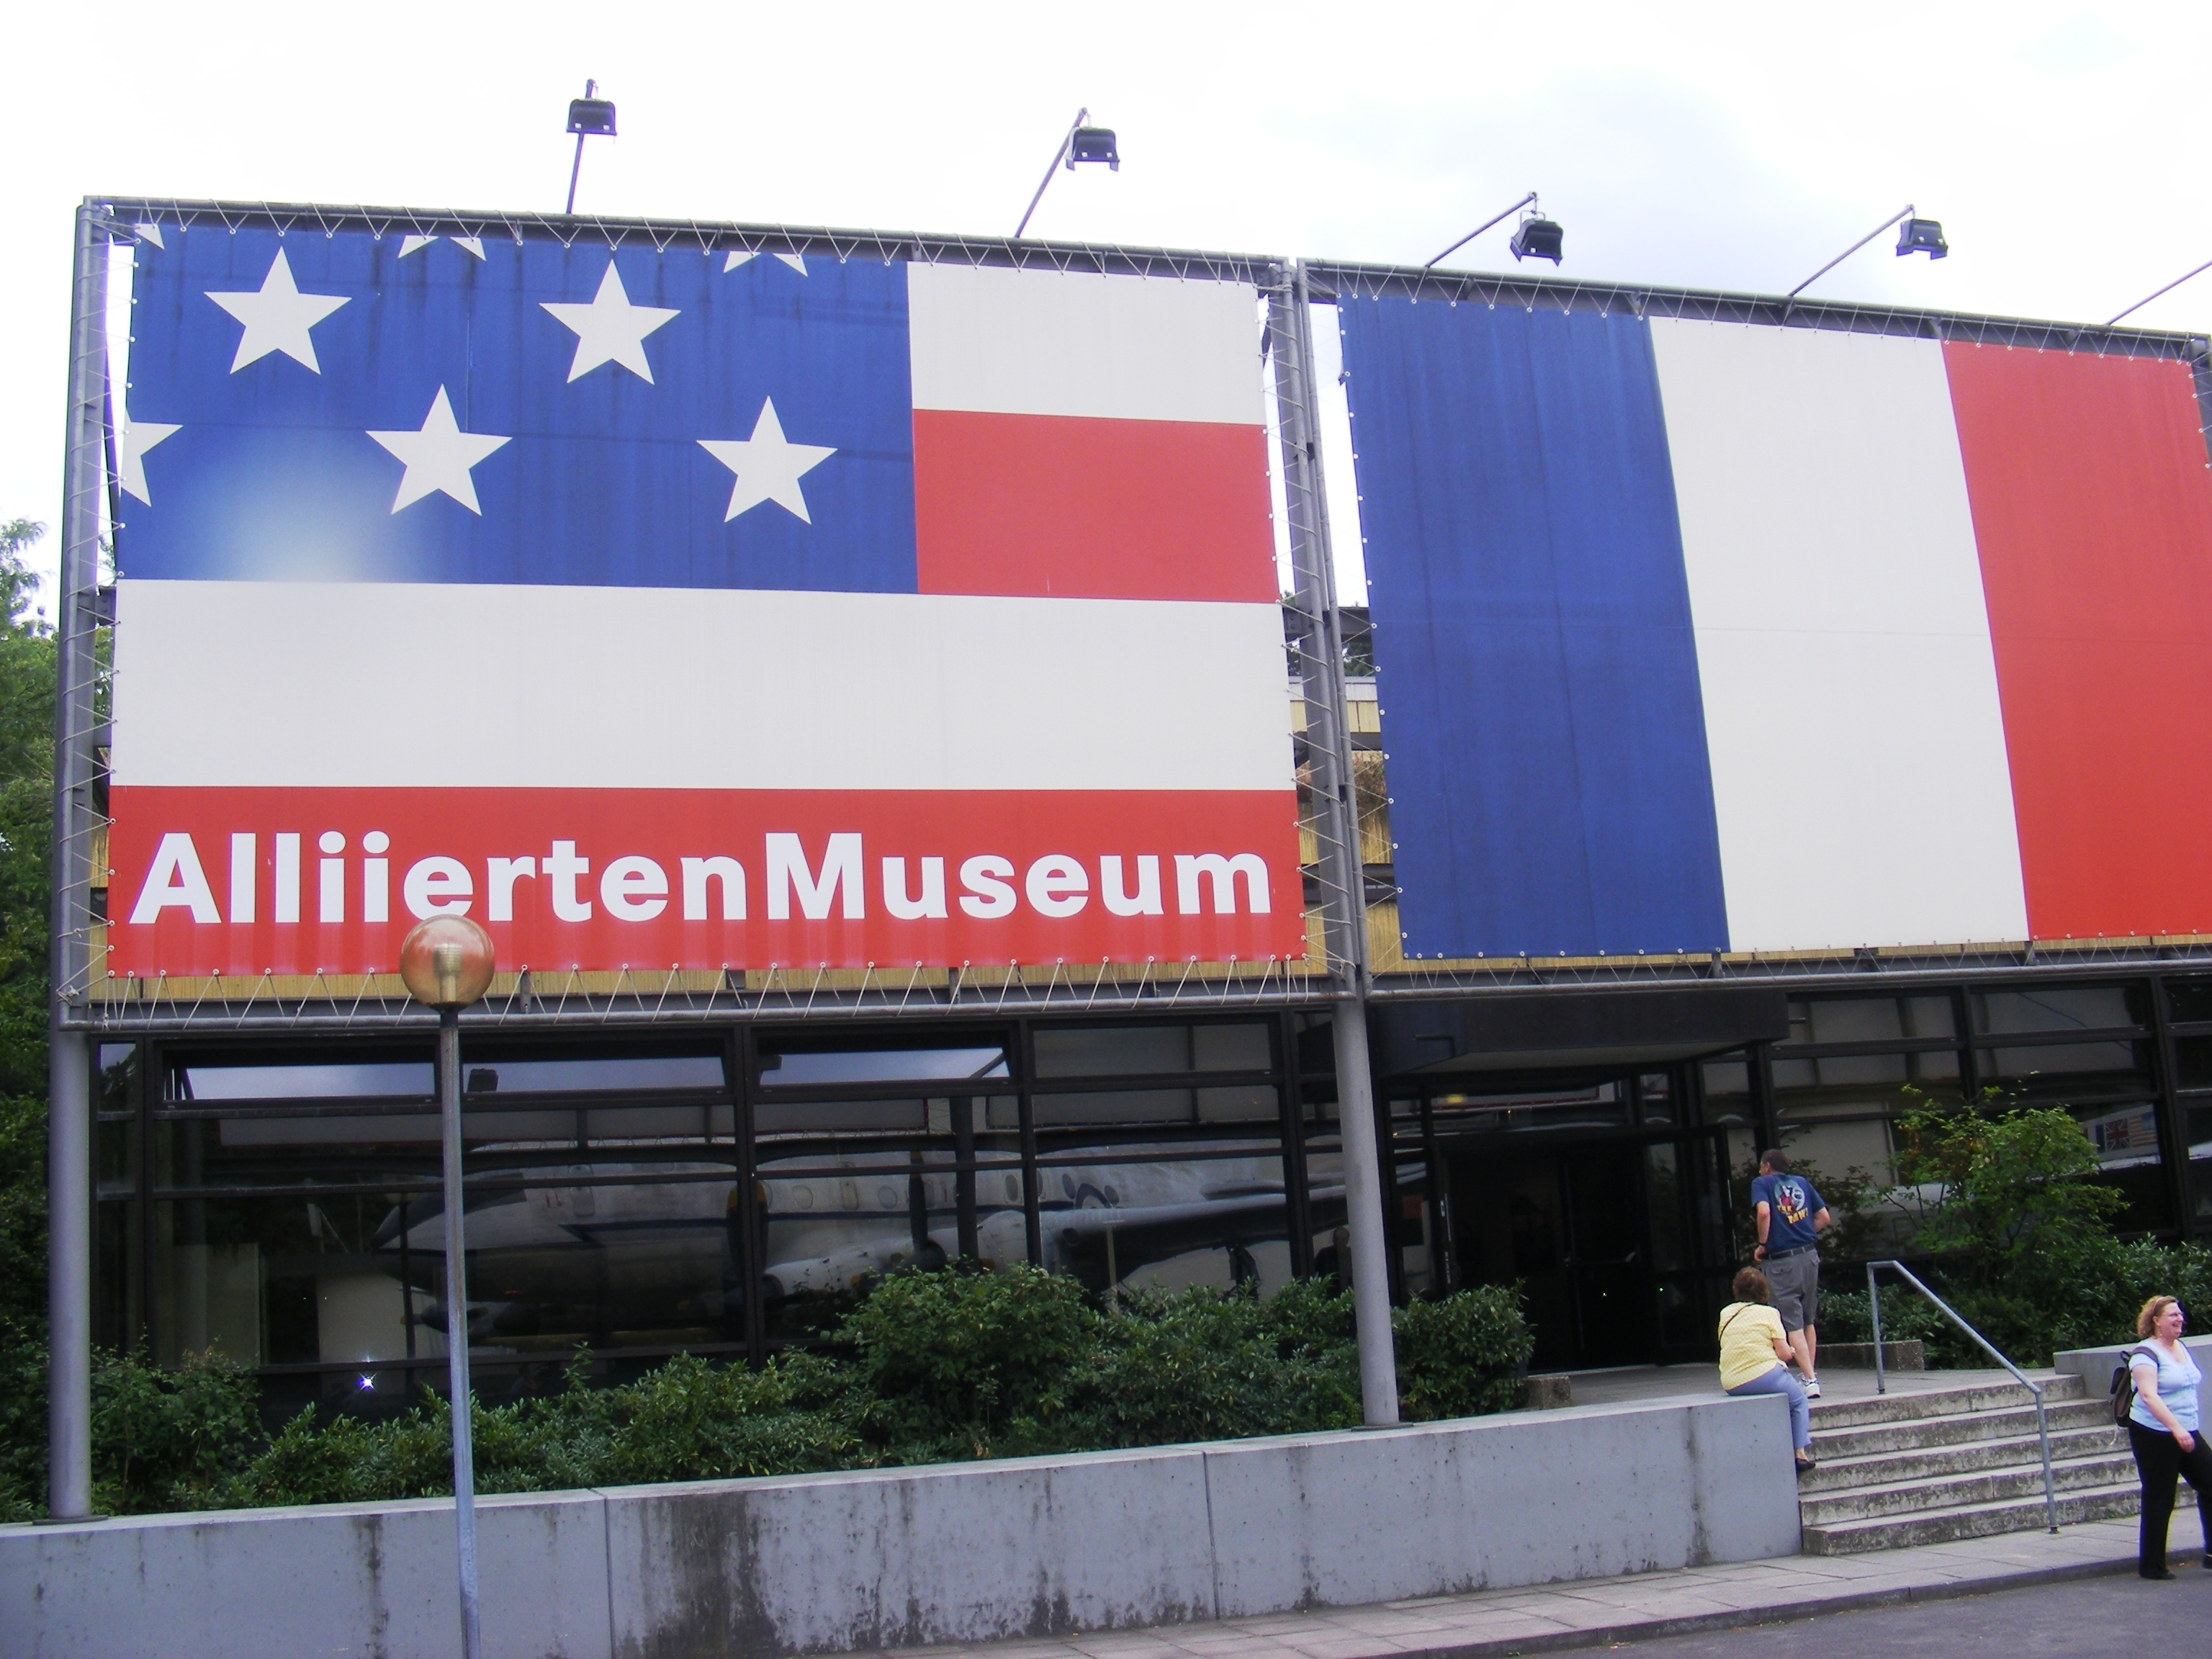 Alliierten Museum (Allied Museum)